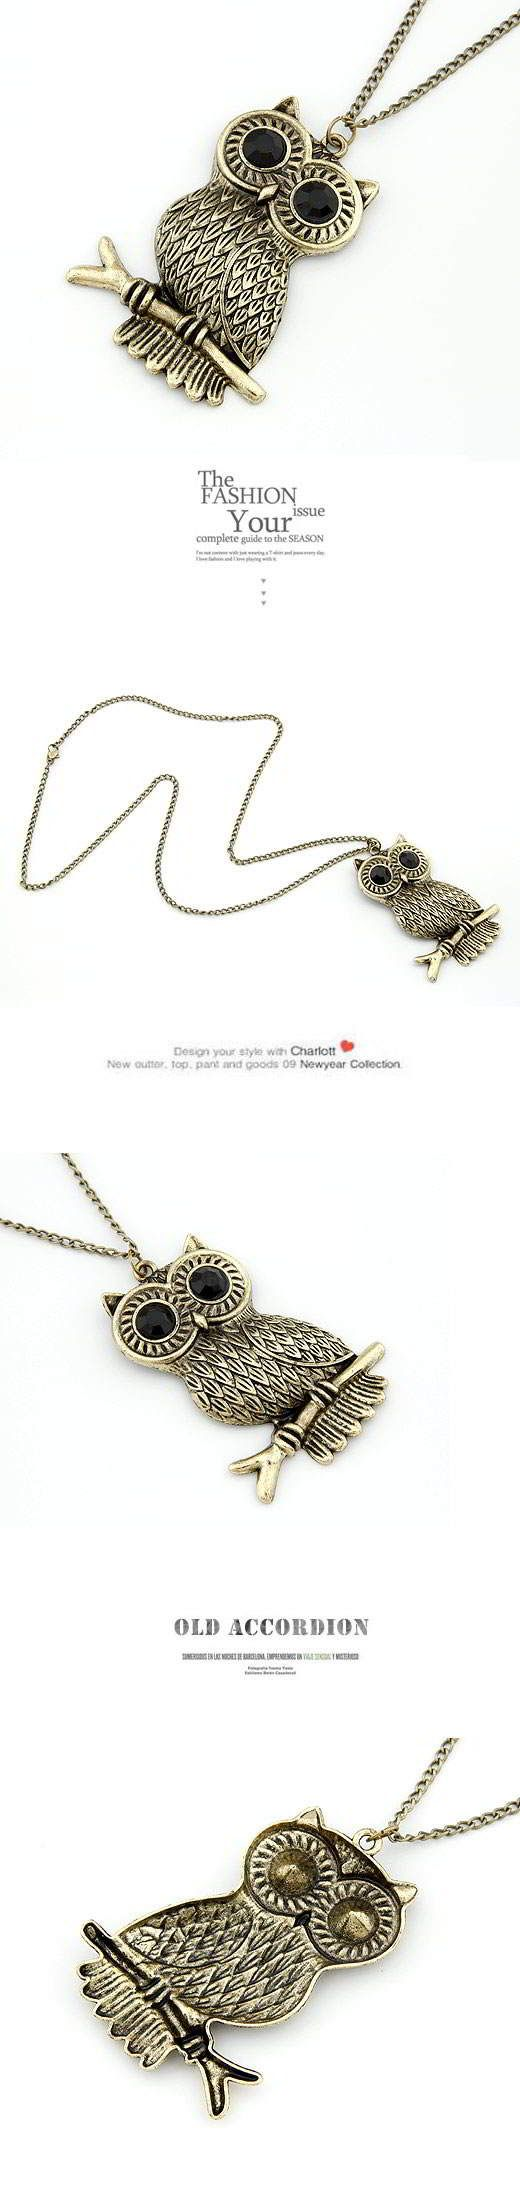 Korean Exquisite Vintage Fashion OWL Standing On Branch Charm Design Sweater Chain General.  Fashionable with passion REPIN if you like it. Only 26 IDR